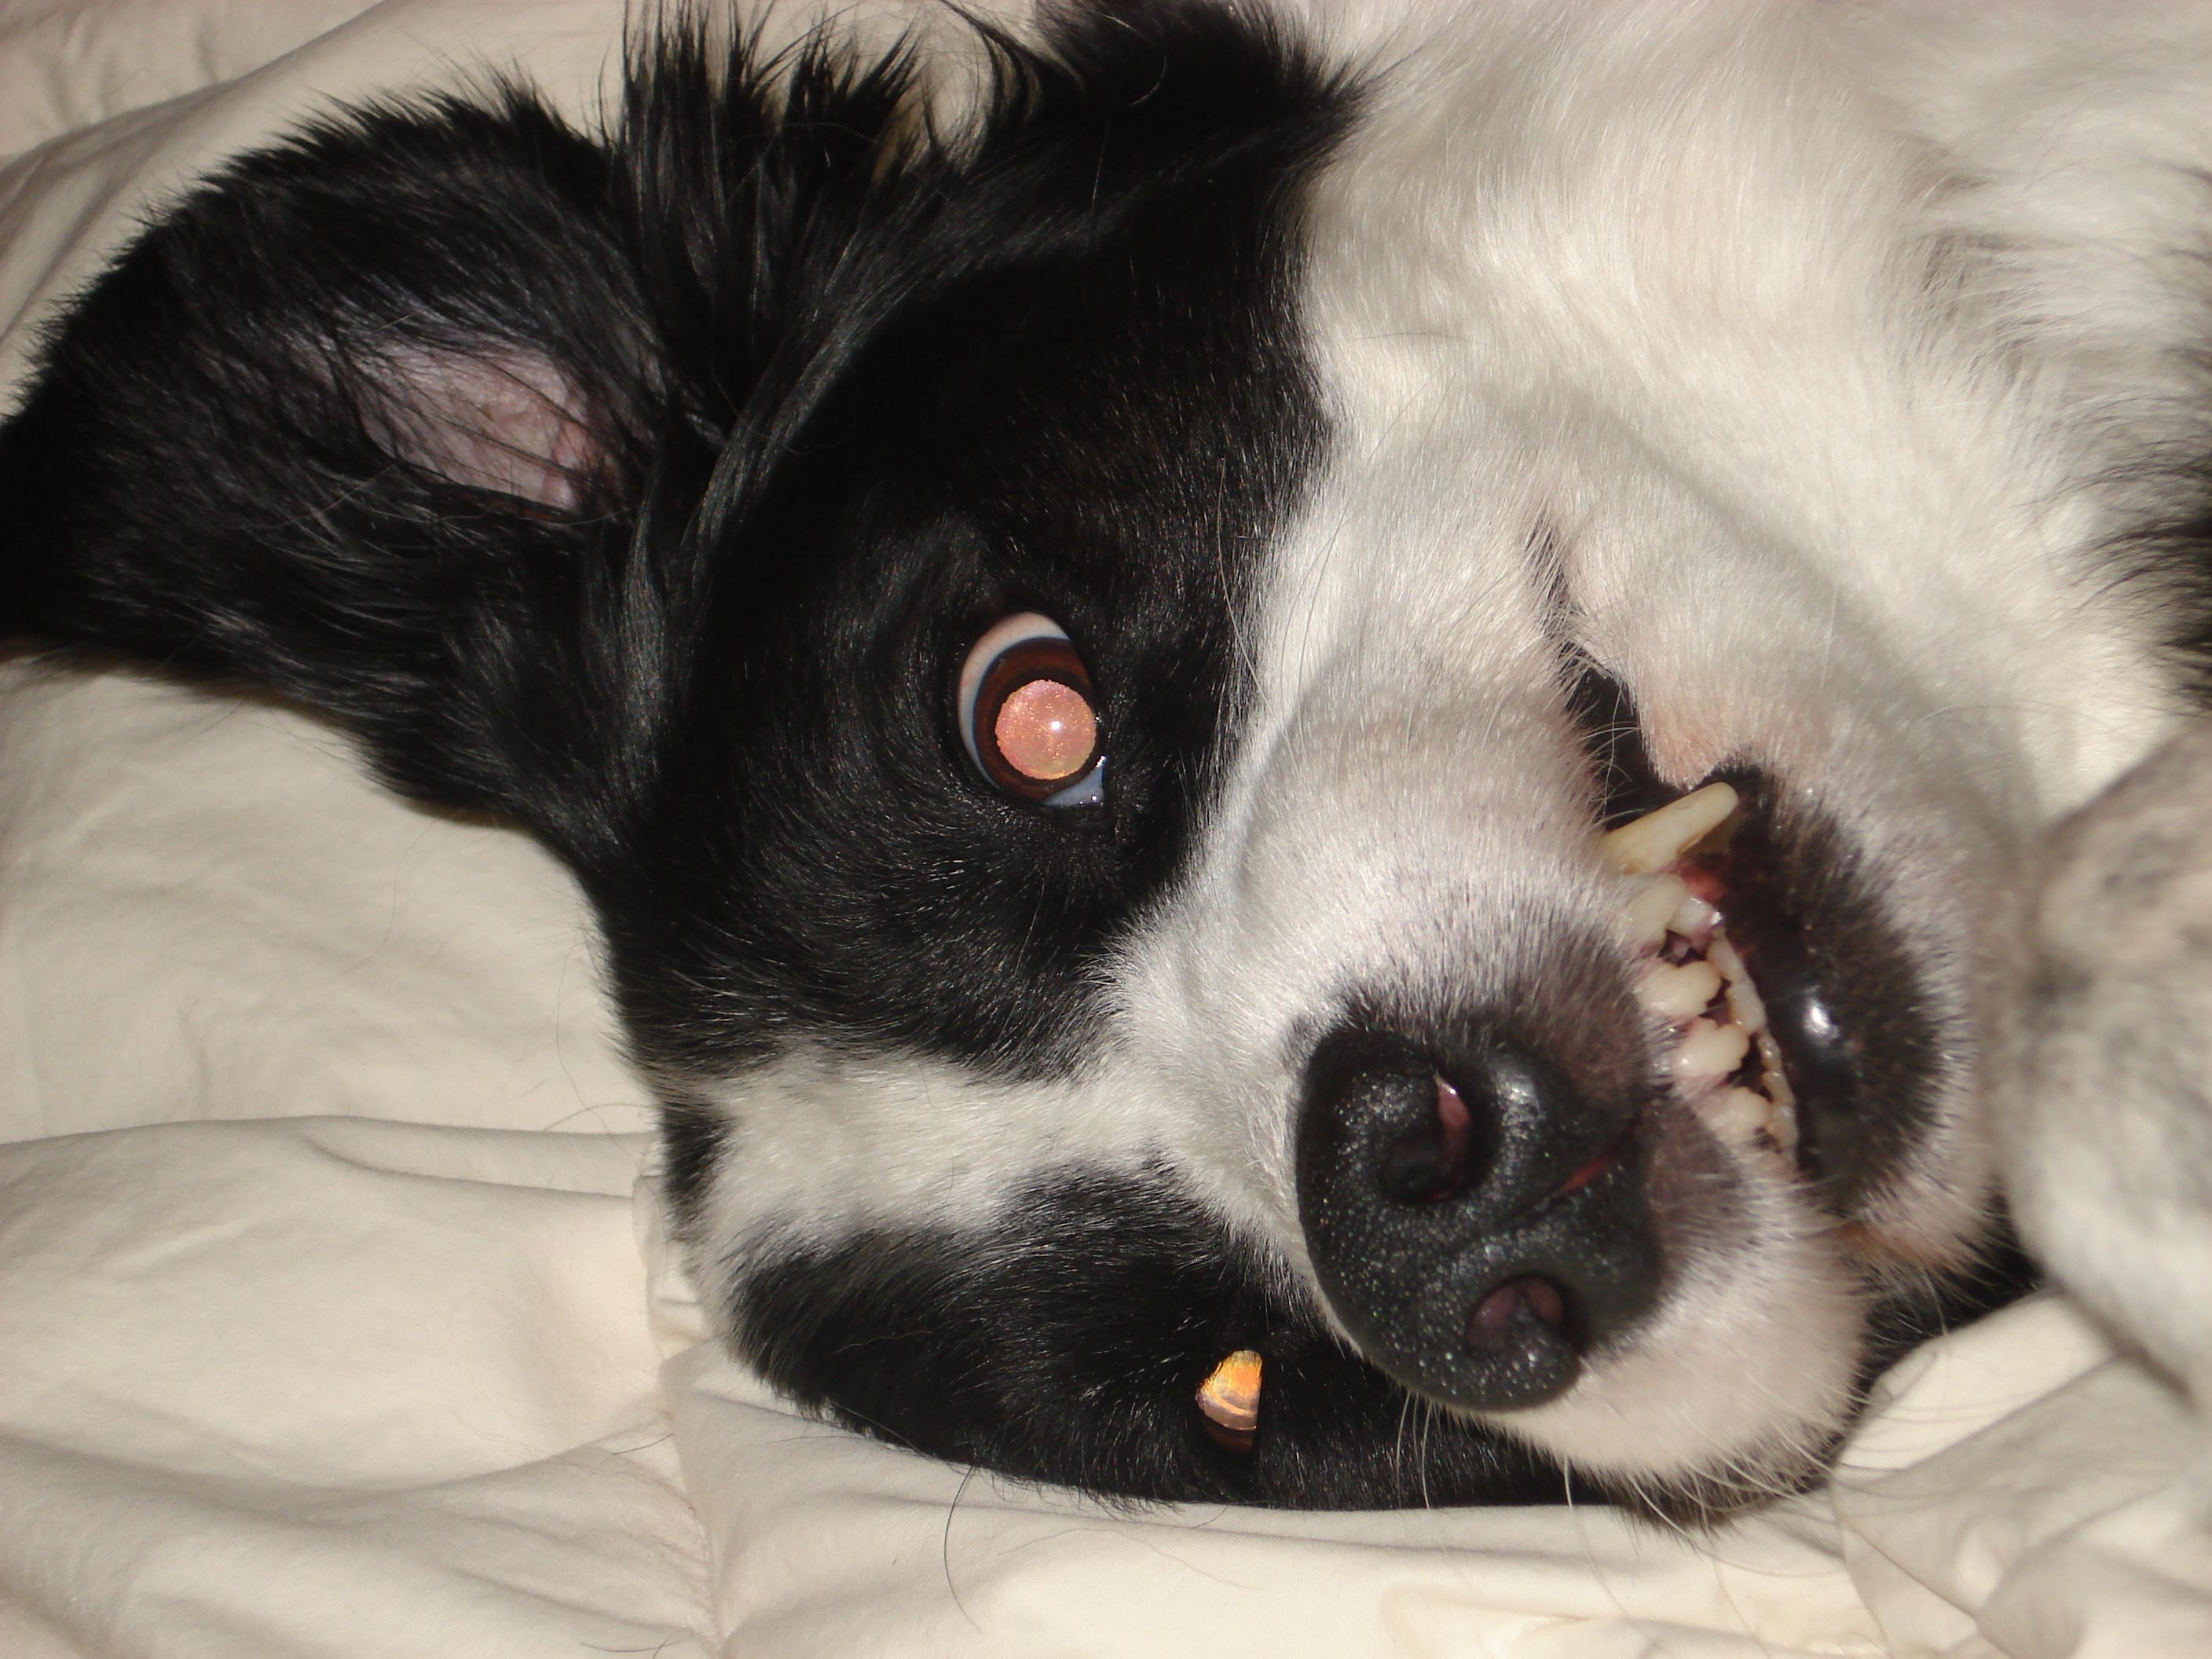 My Border Collie Fly When The Moon Is Full She Gets A Funny